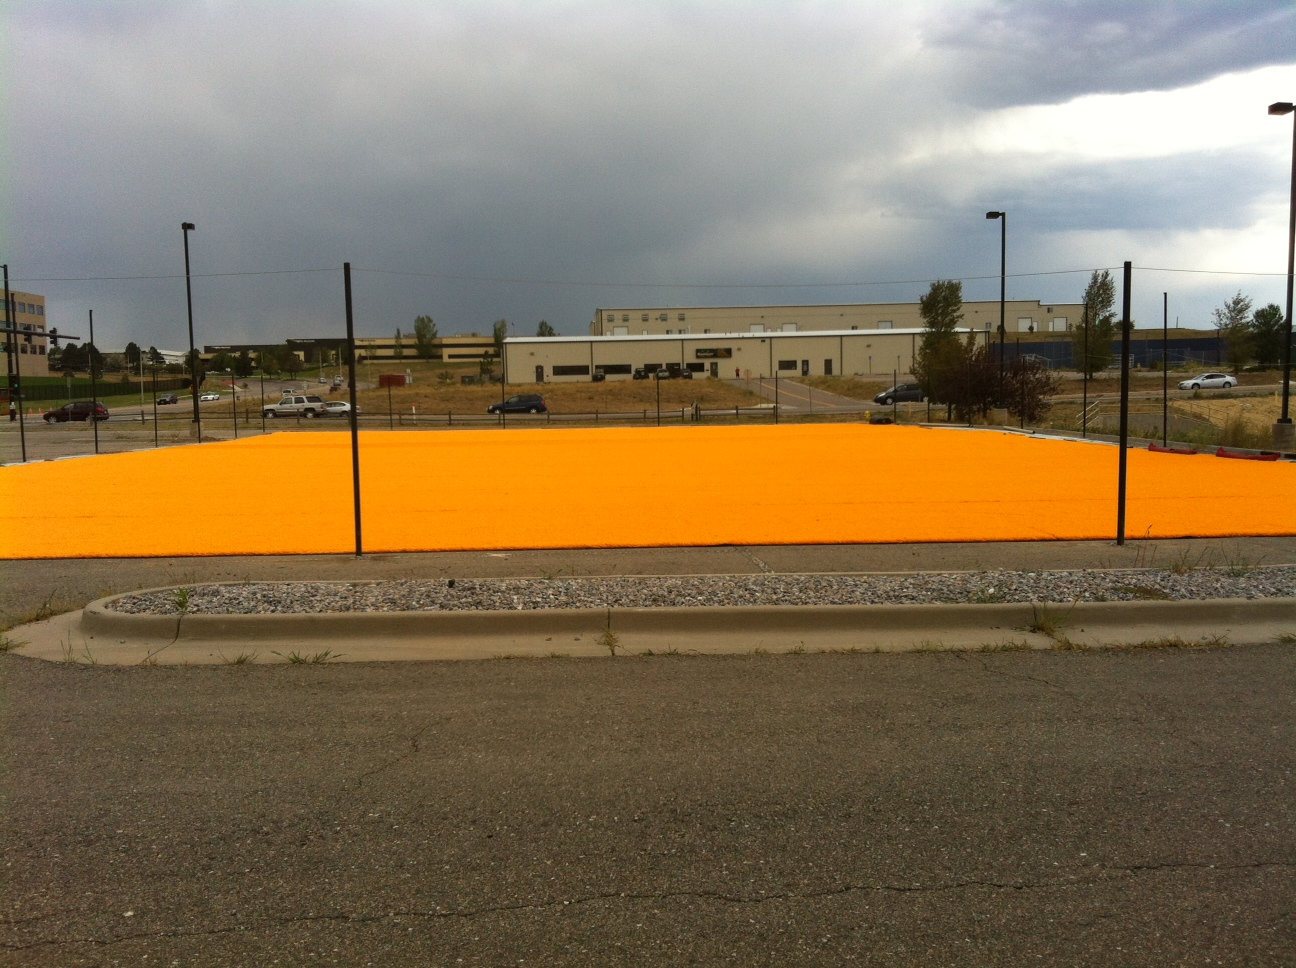 Total Adrenaline Paintball in Denver CO uses Money Turf